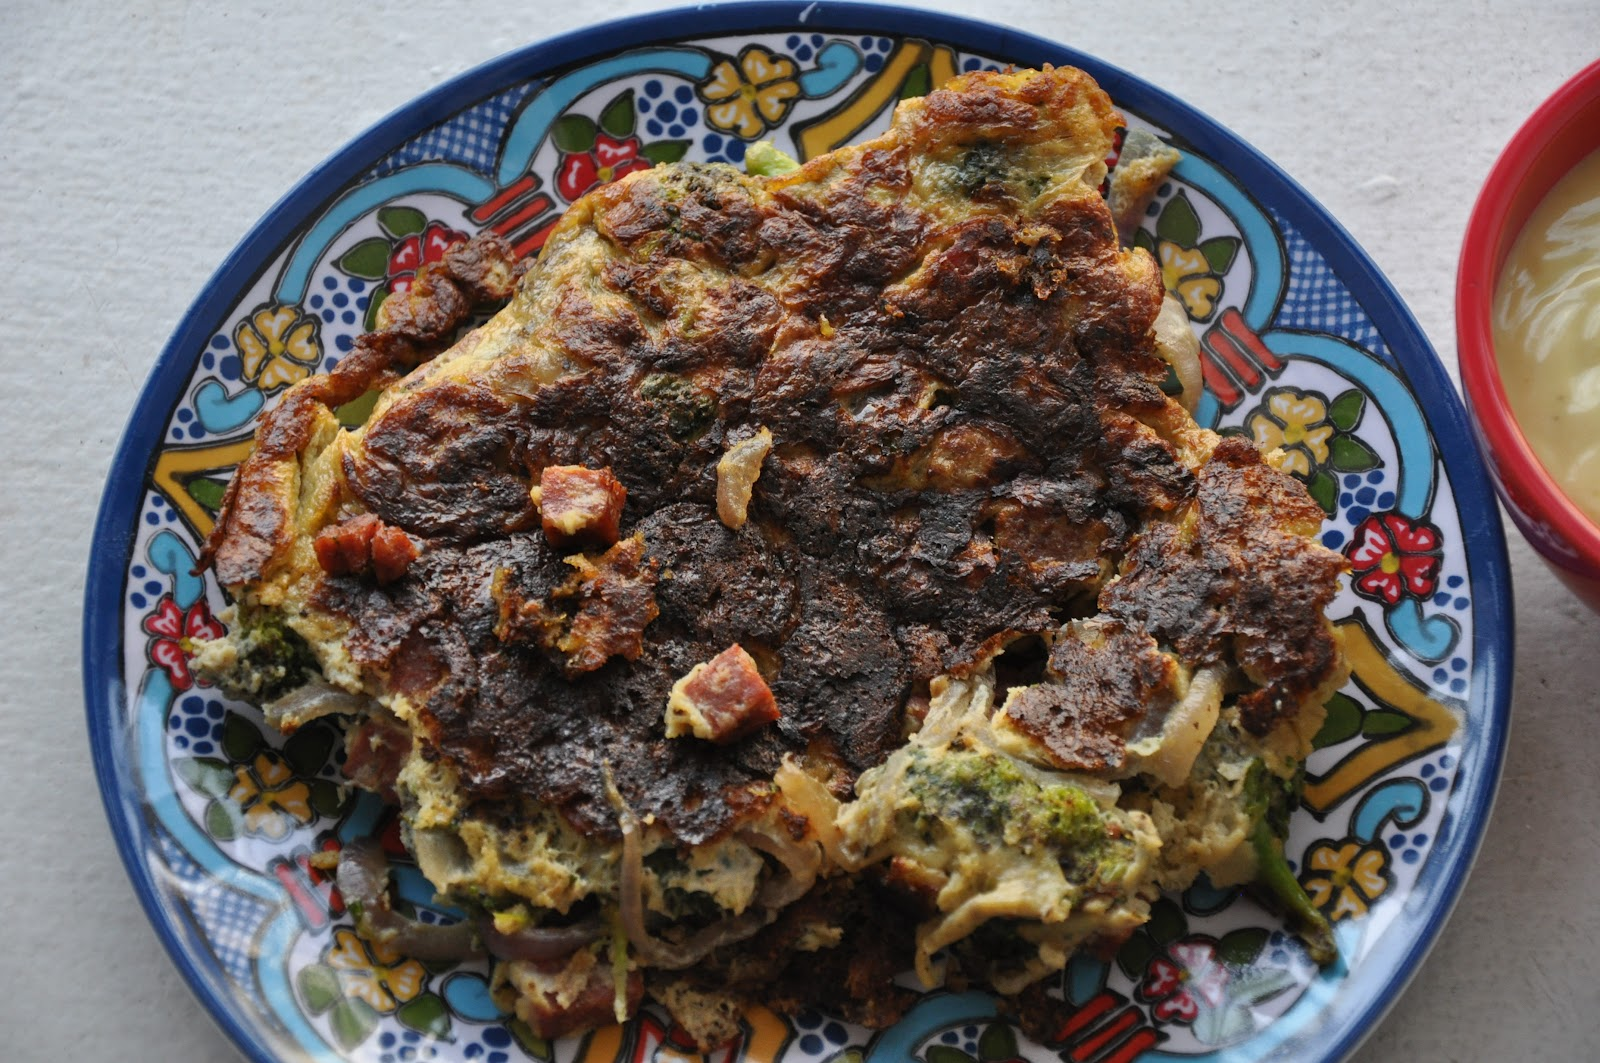 Slice of Rice: Spanish Tortilla with Broccoli, Chorizo and Onion